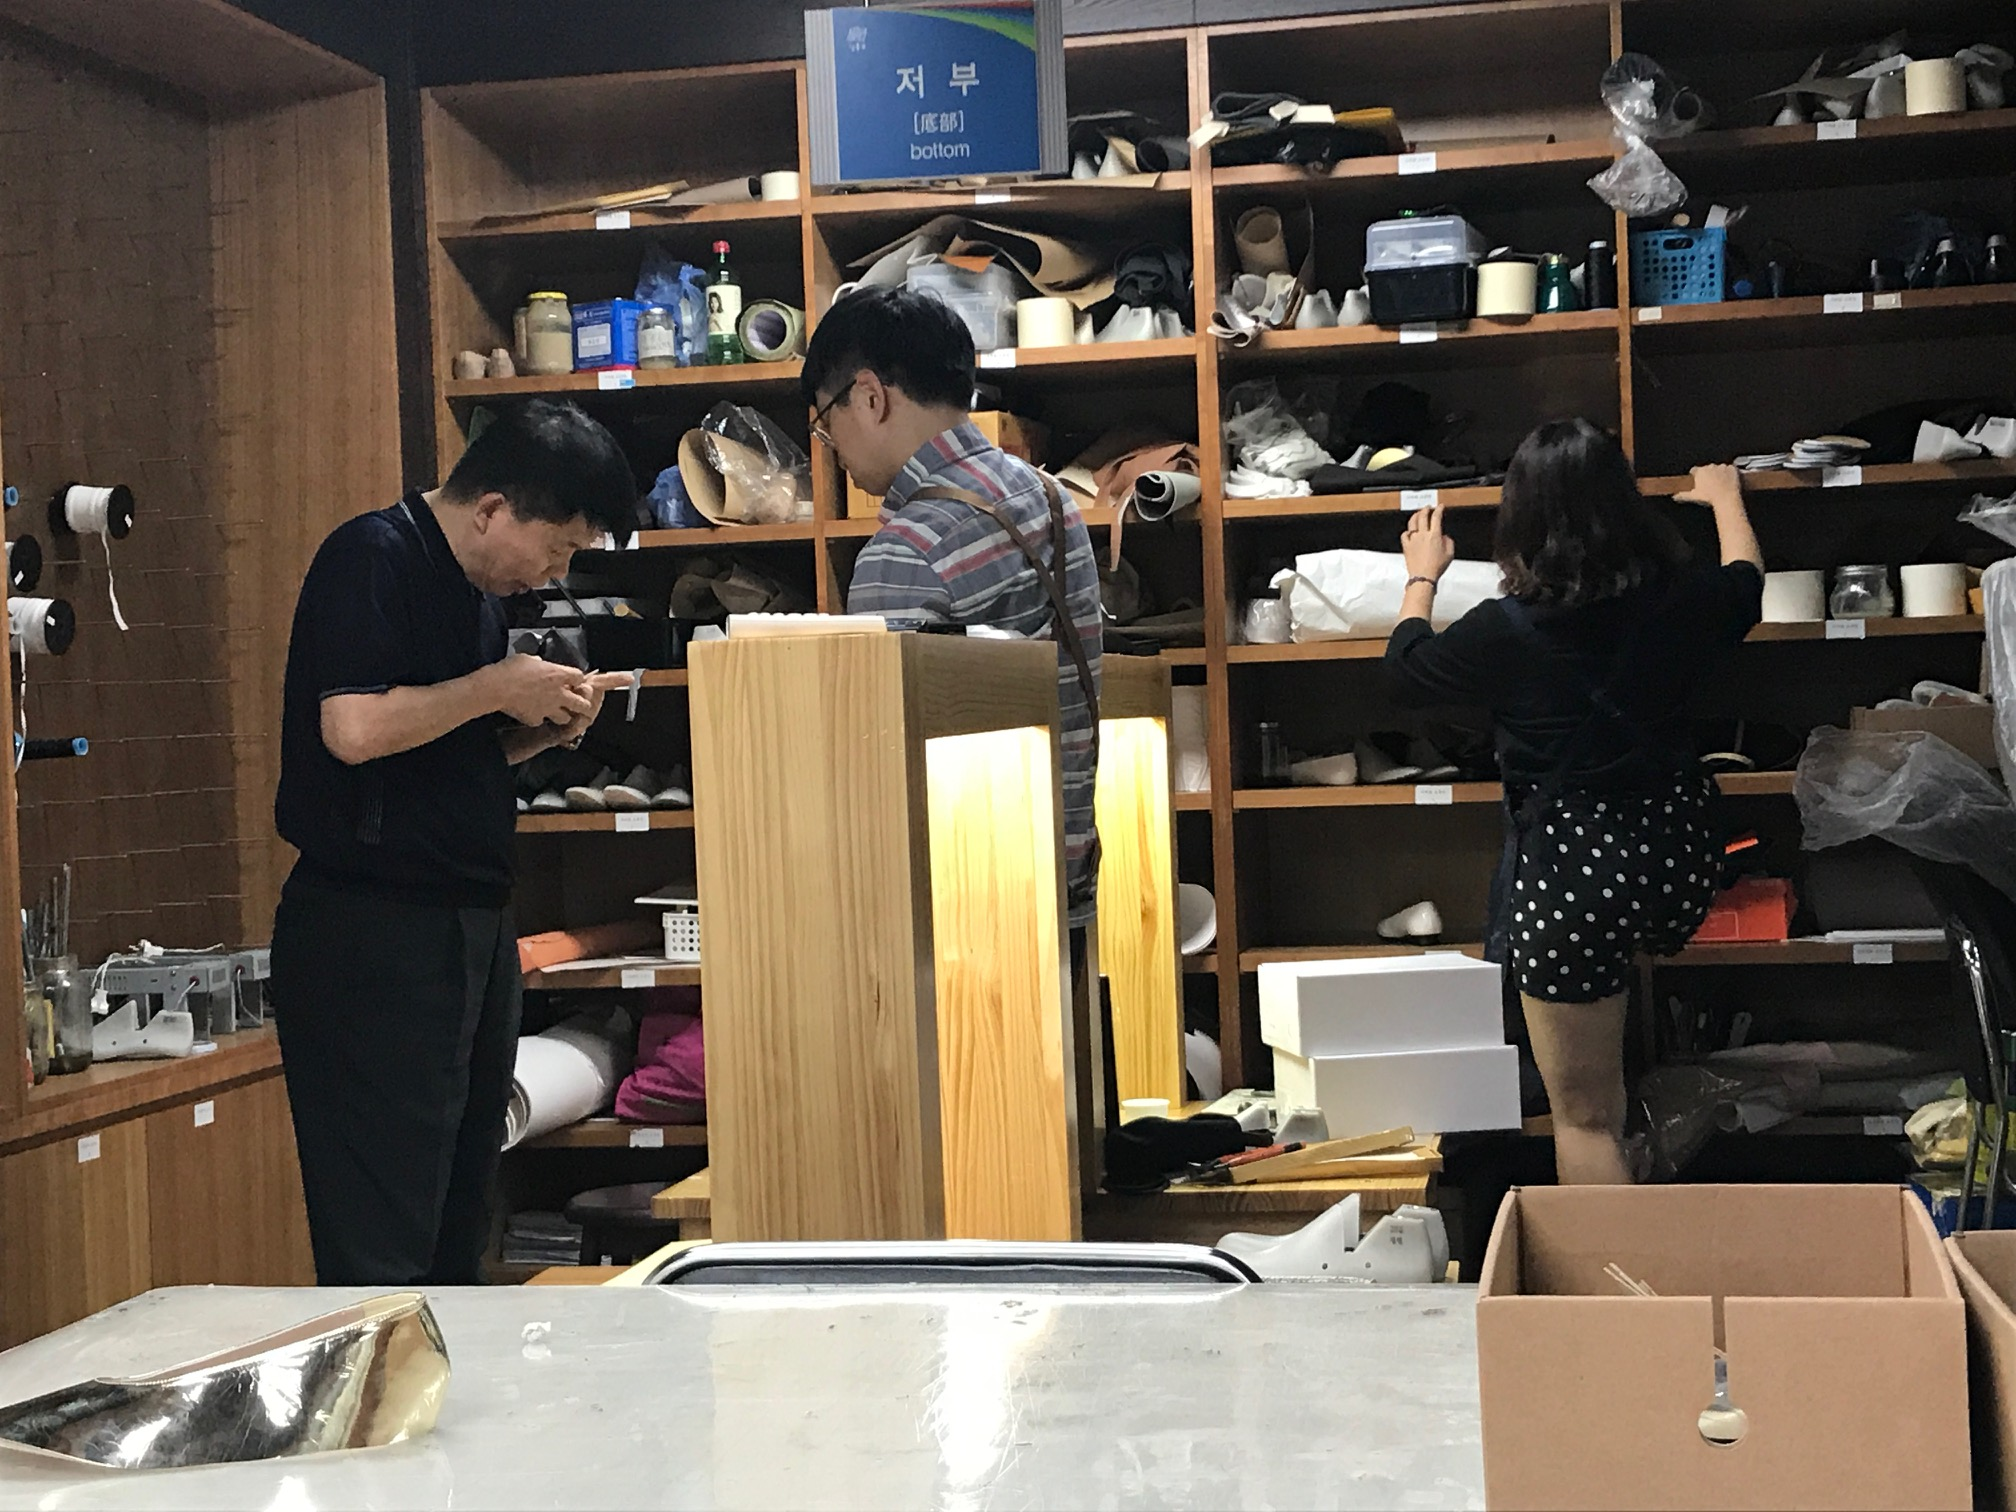 The man in far right corner teaches the students, and he is truly an expert. He can make 1 pair of shoes in 1 hour, averaging about 15 shoes per day. He's been hand-making shoes for 30 years!